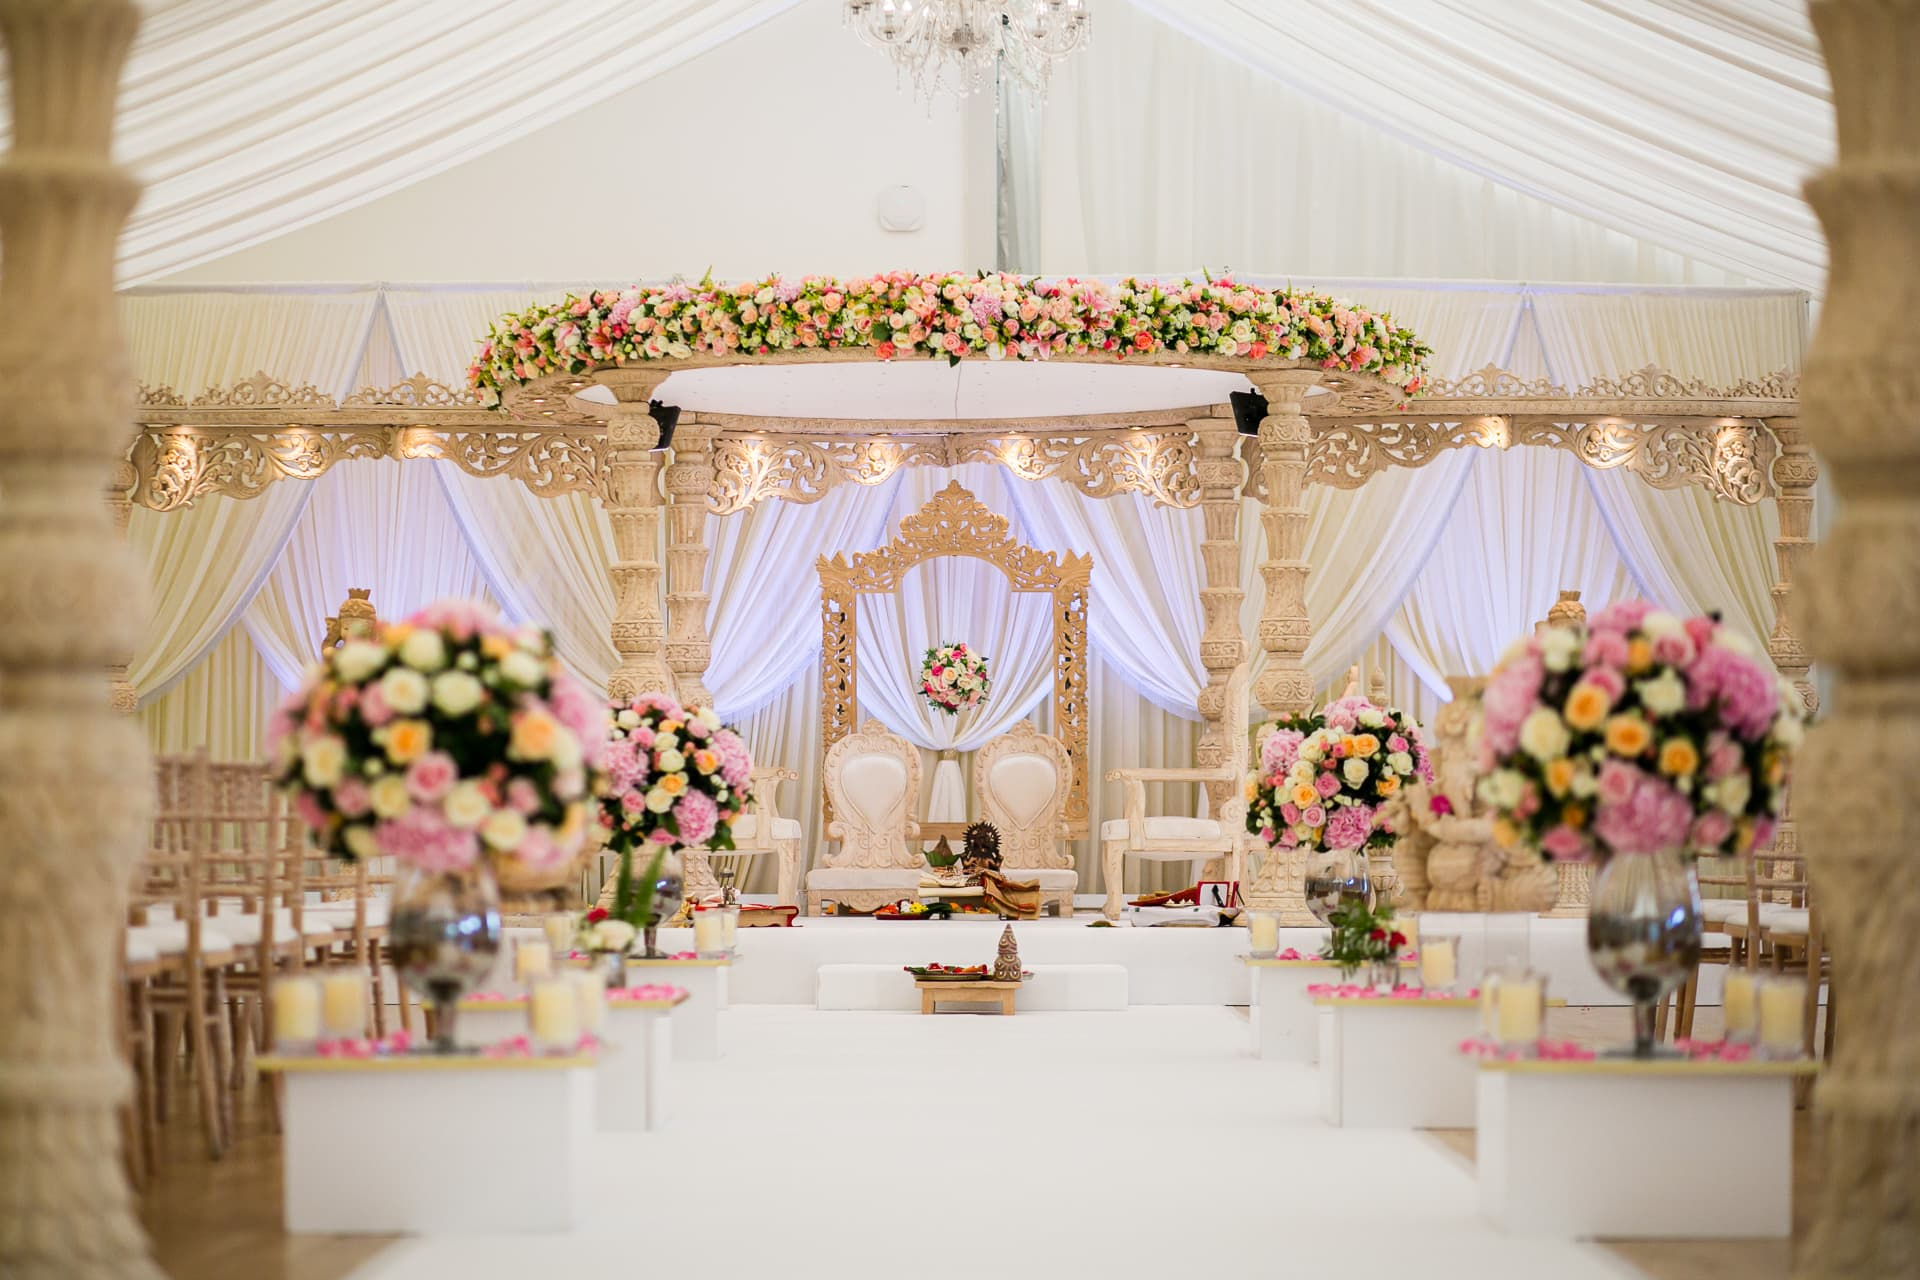 Asian wedding decoration by Shagun Weddings